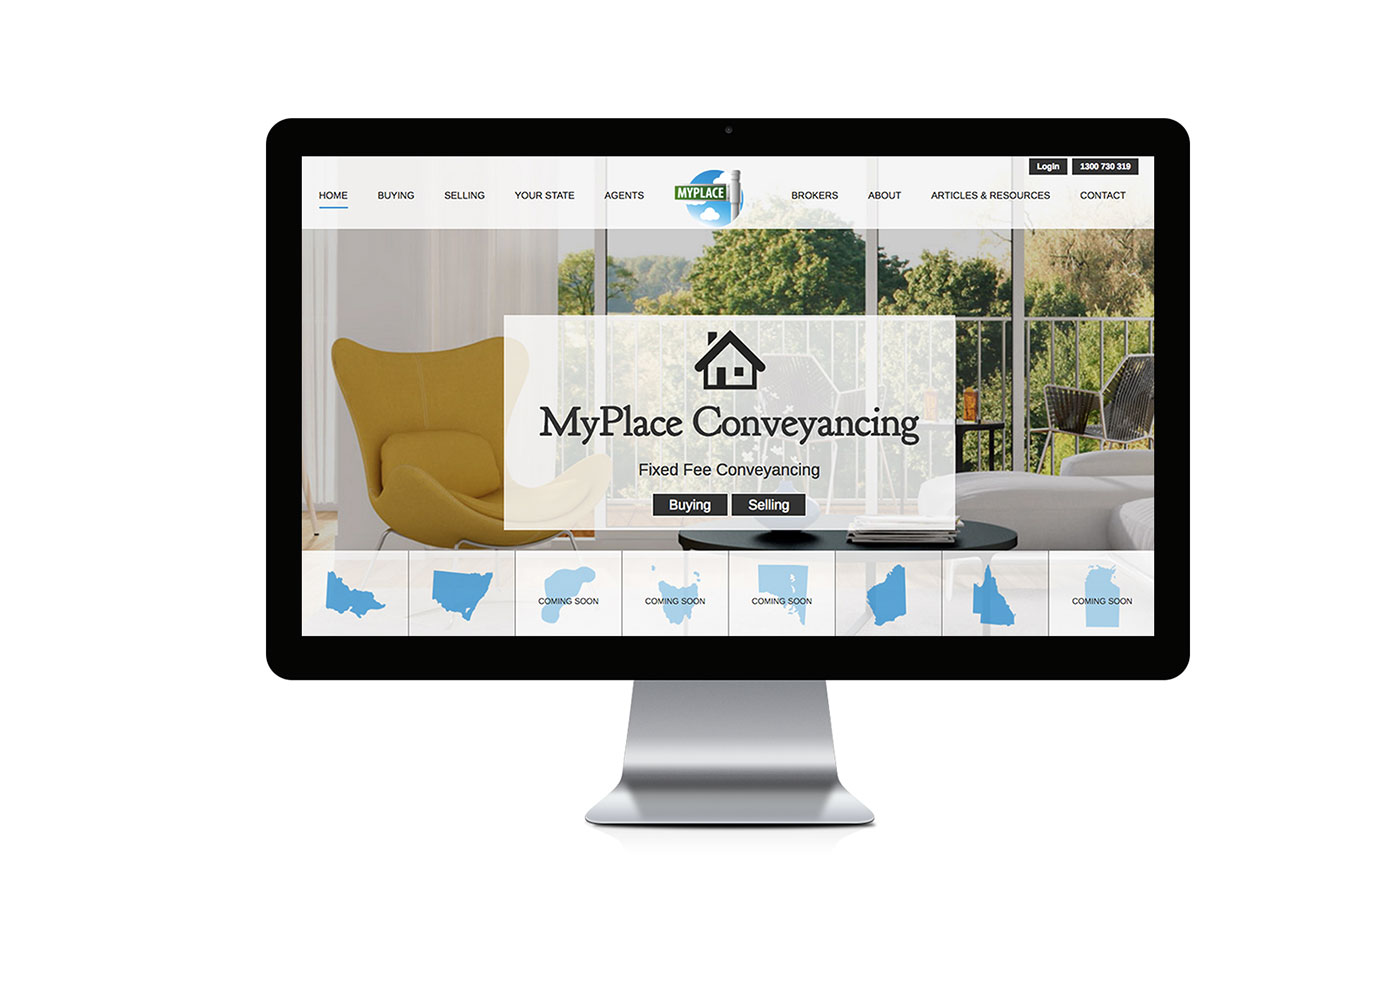 MyPlace Conveyancing image